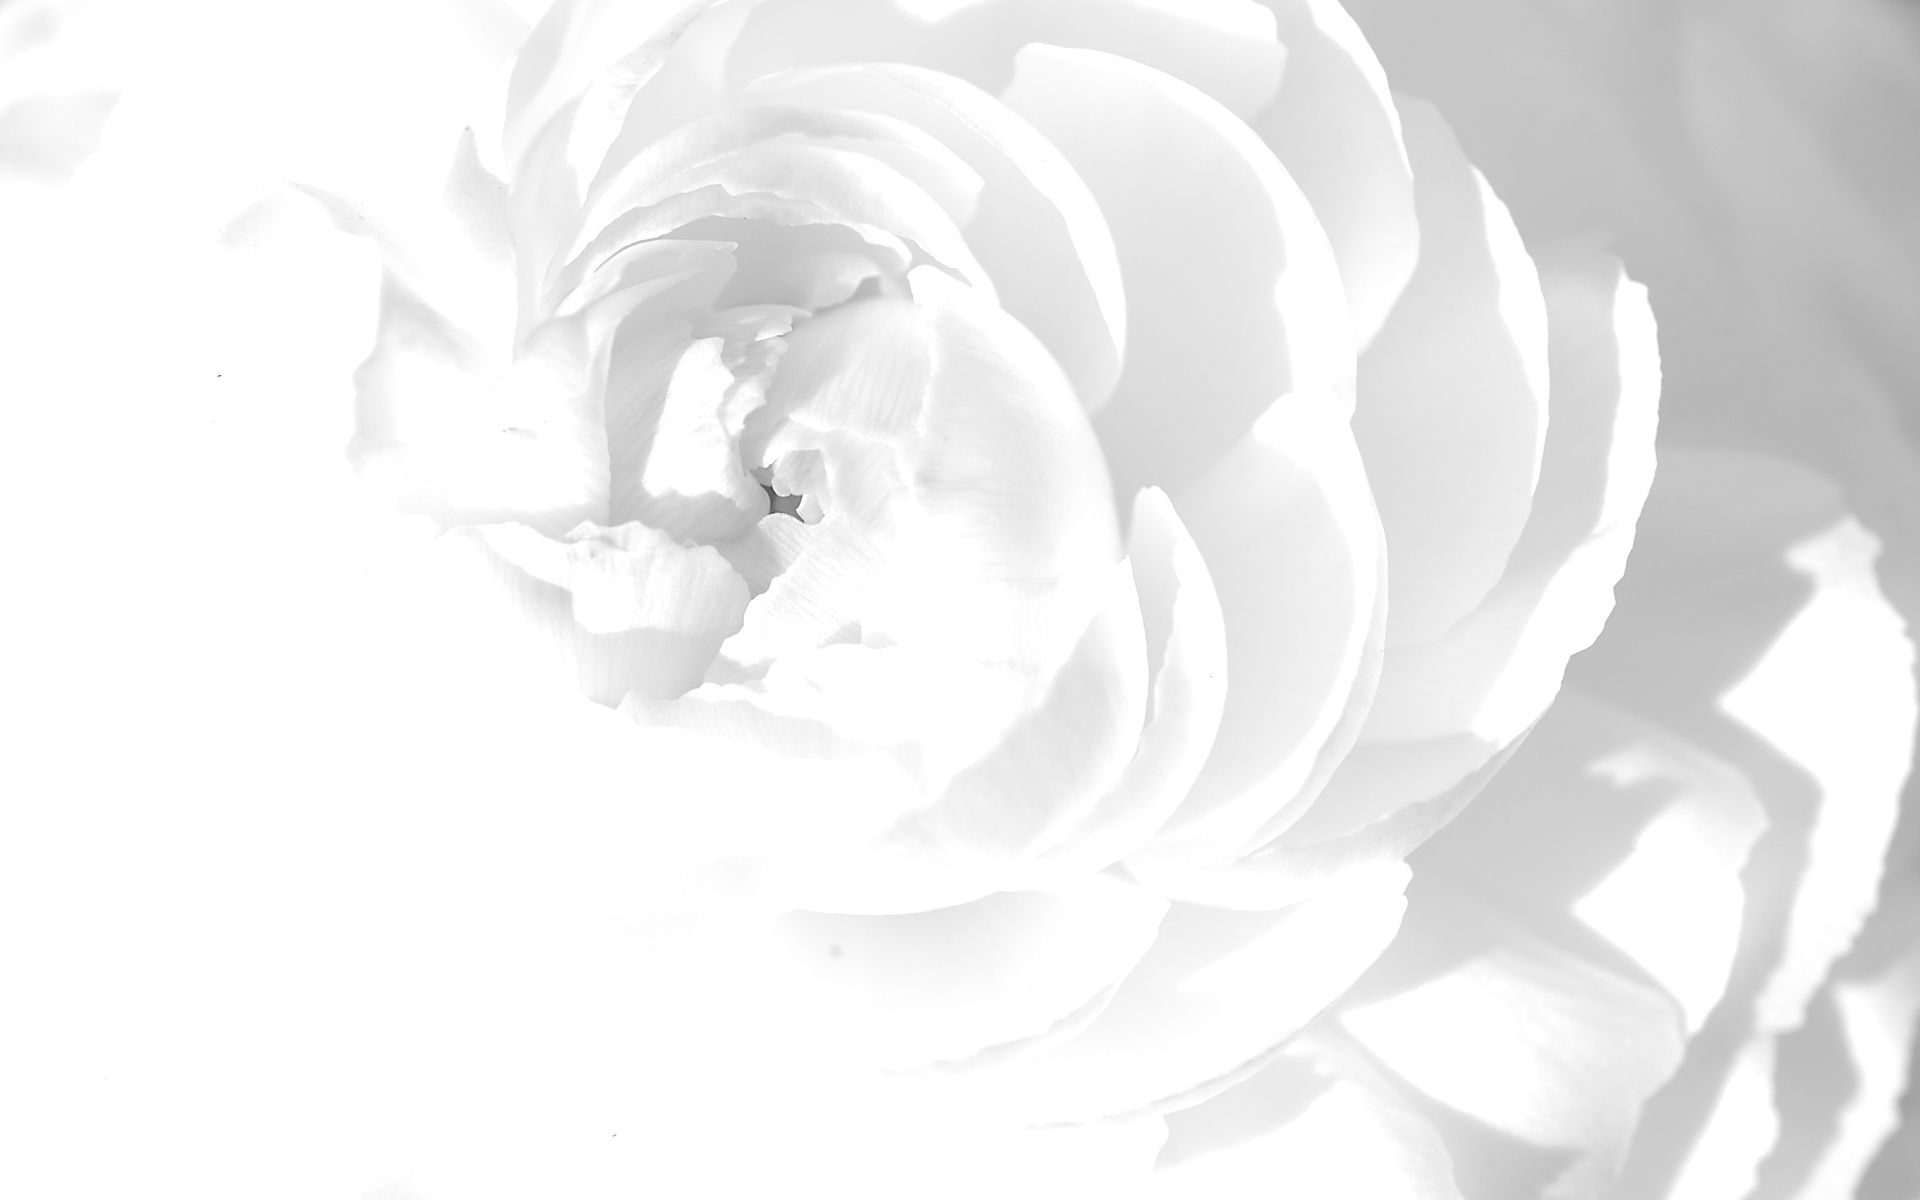 White rose picture colours hd wallpaper pure white white rose picture colours hd wallpaper mightylinksfo Images